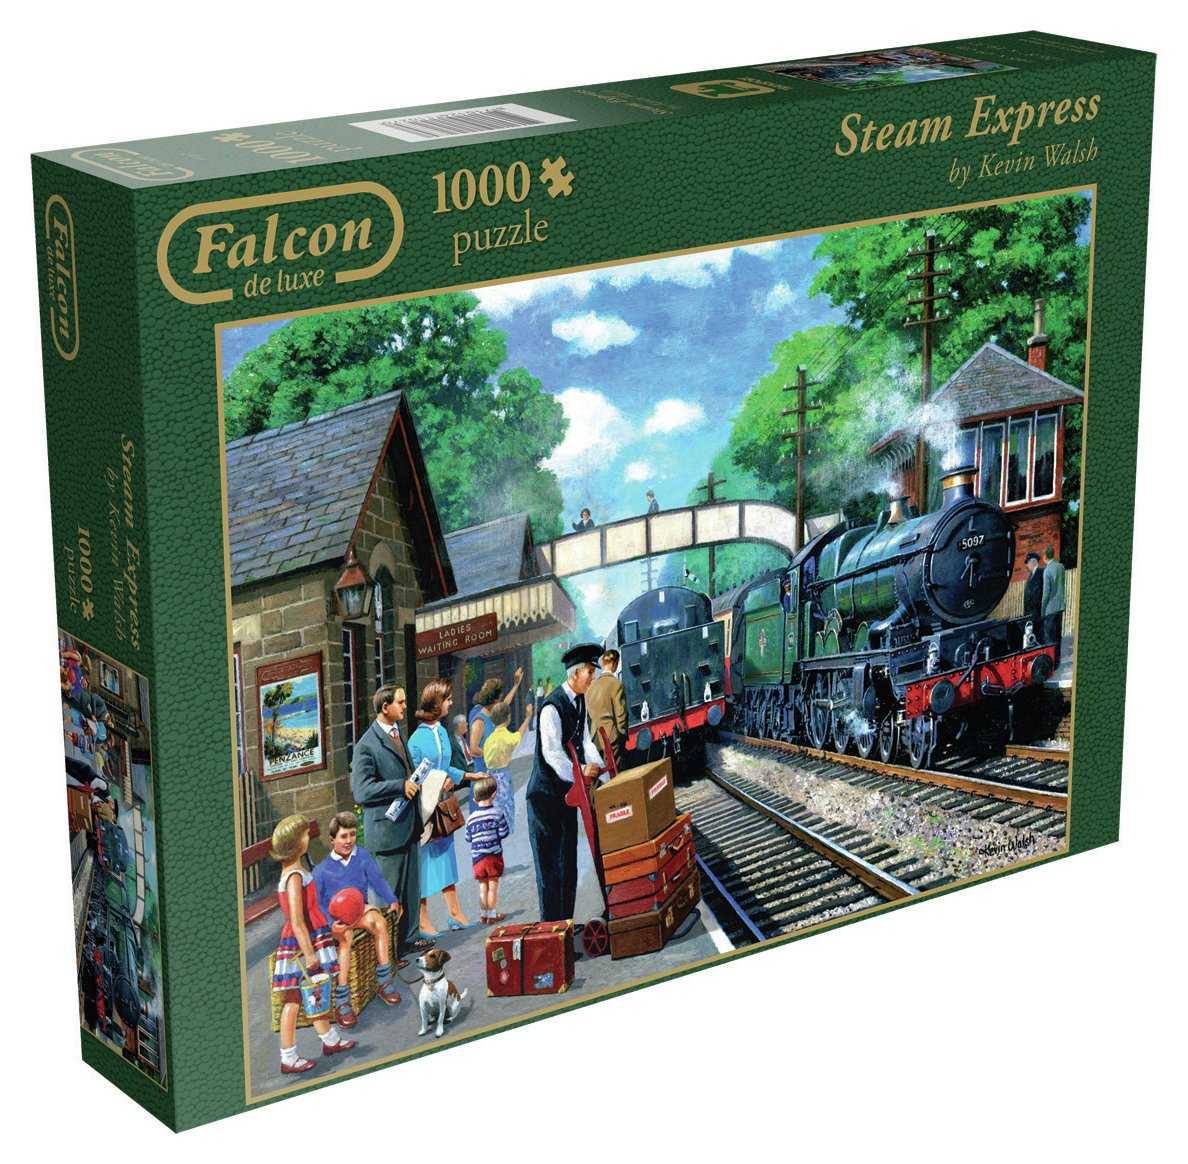 Falcon Deluxe Steam Express Jigsaw Puzzle.